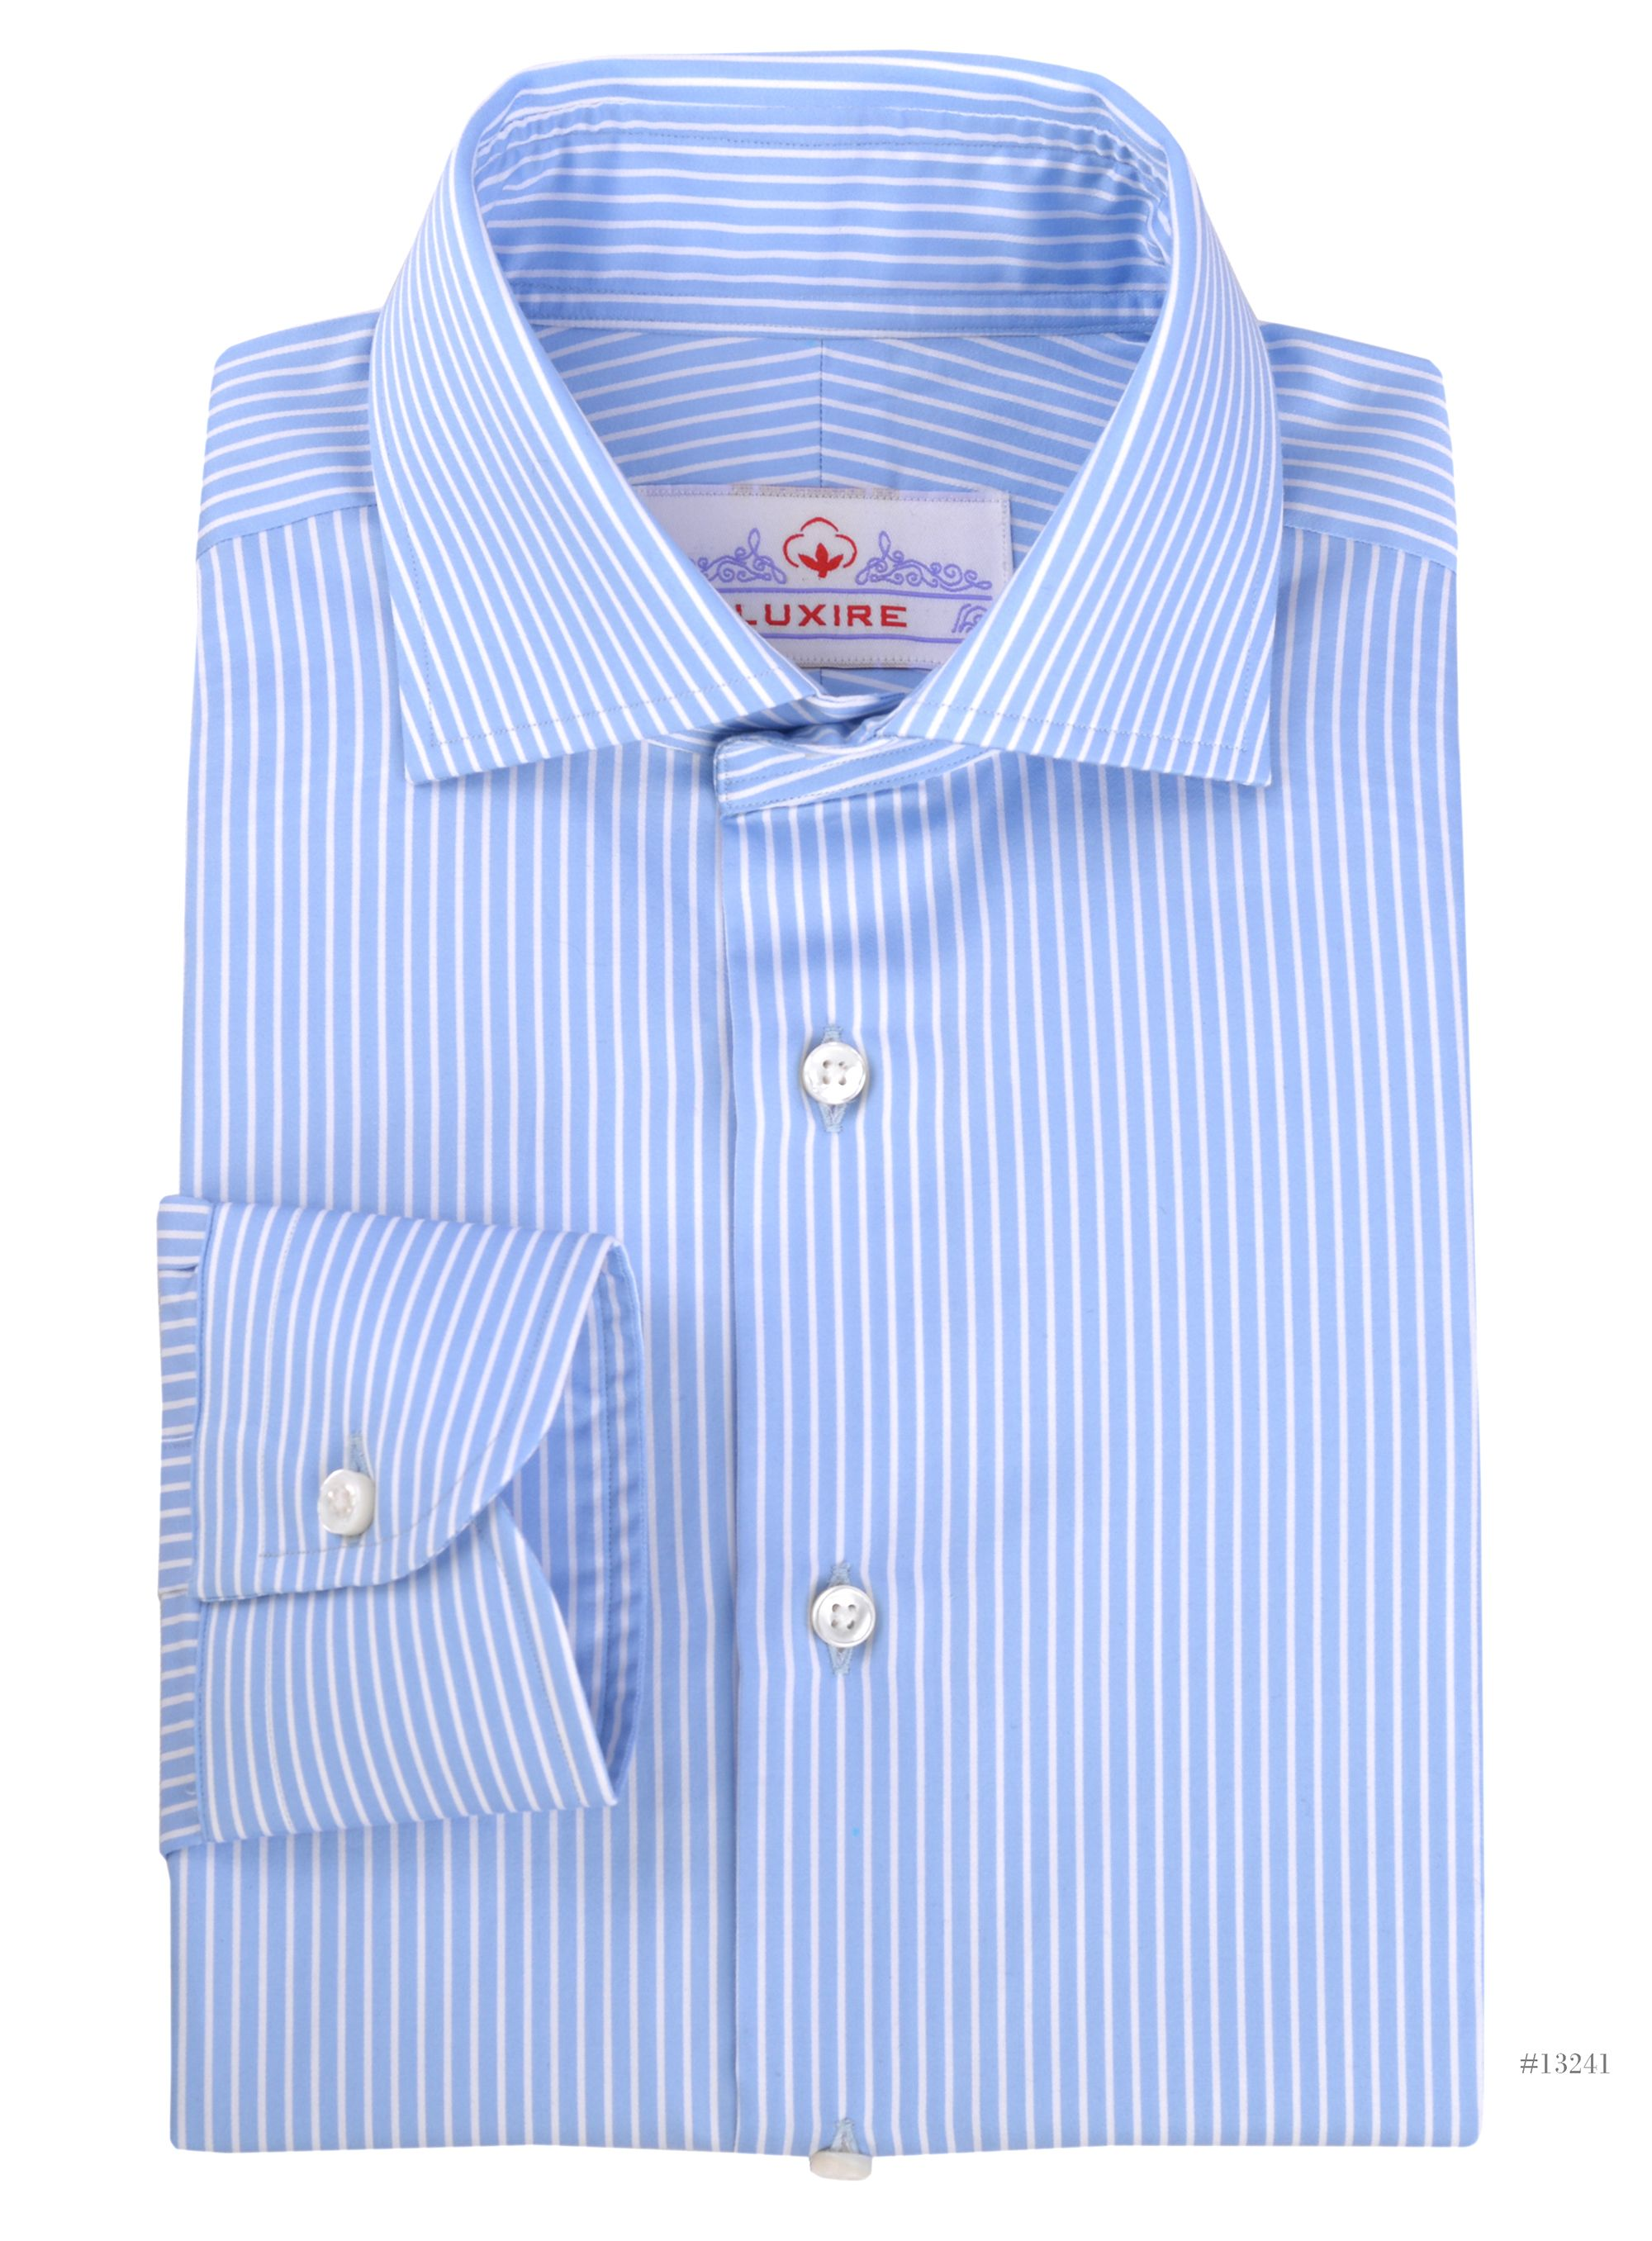 a6225aa0b7 Luxire dress shirt constructed in White Pencil Stripes on Light Blue:  http://